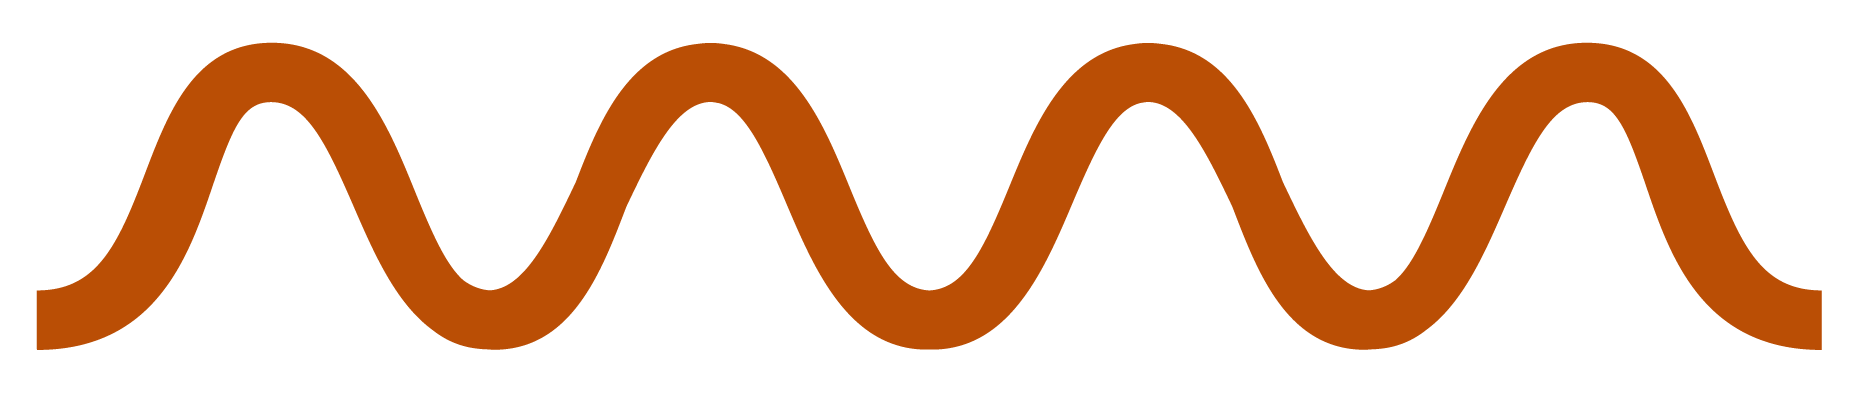 PNG_RGB_squiggle-copper.png